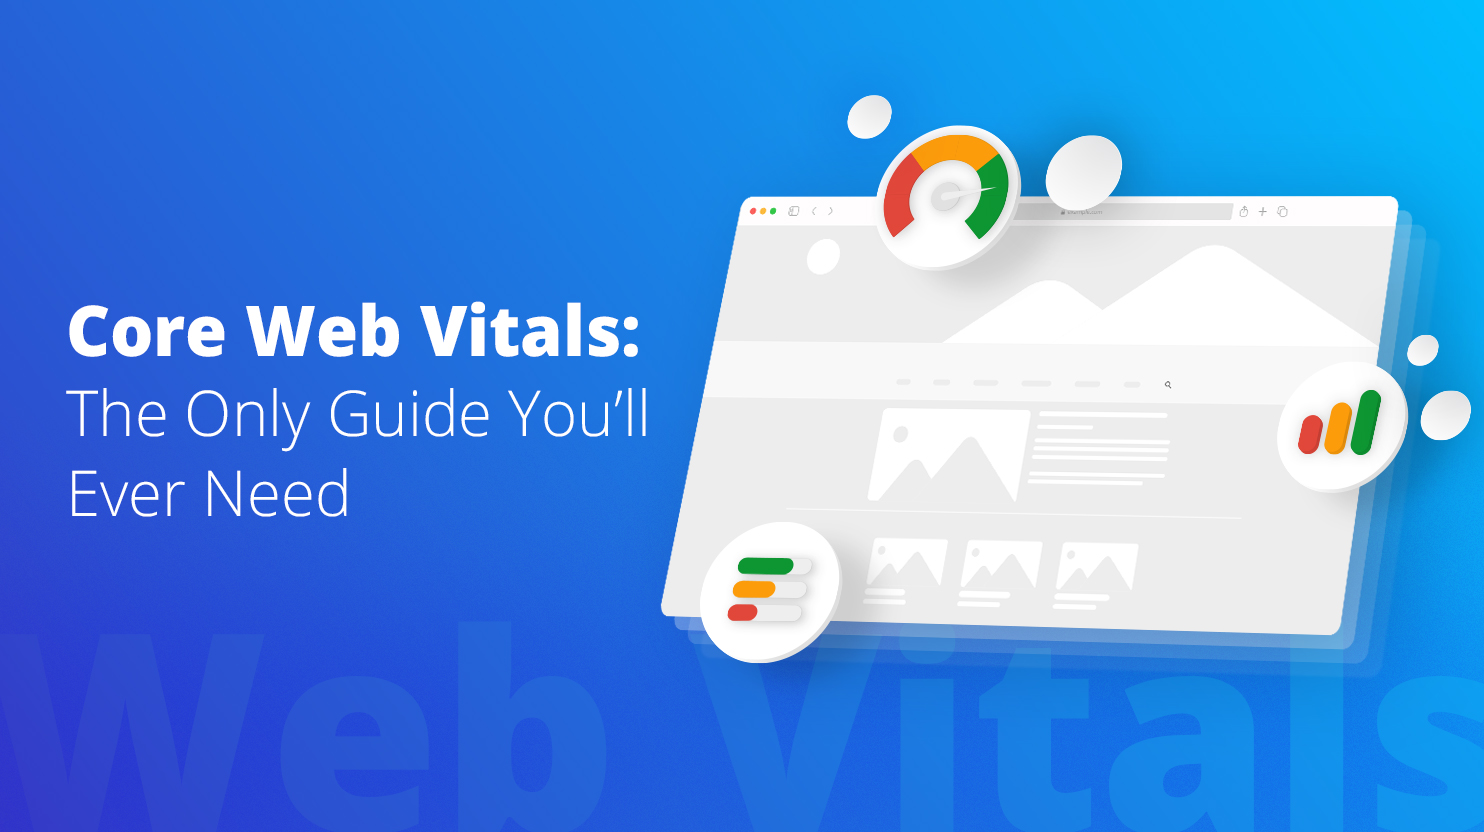 Core Web Vitals: The Only Guide You'll Ever Need